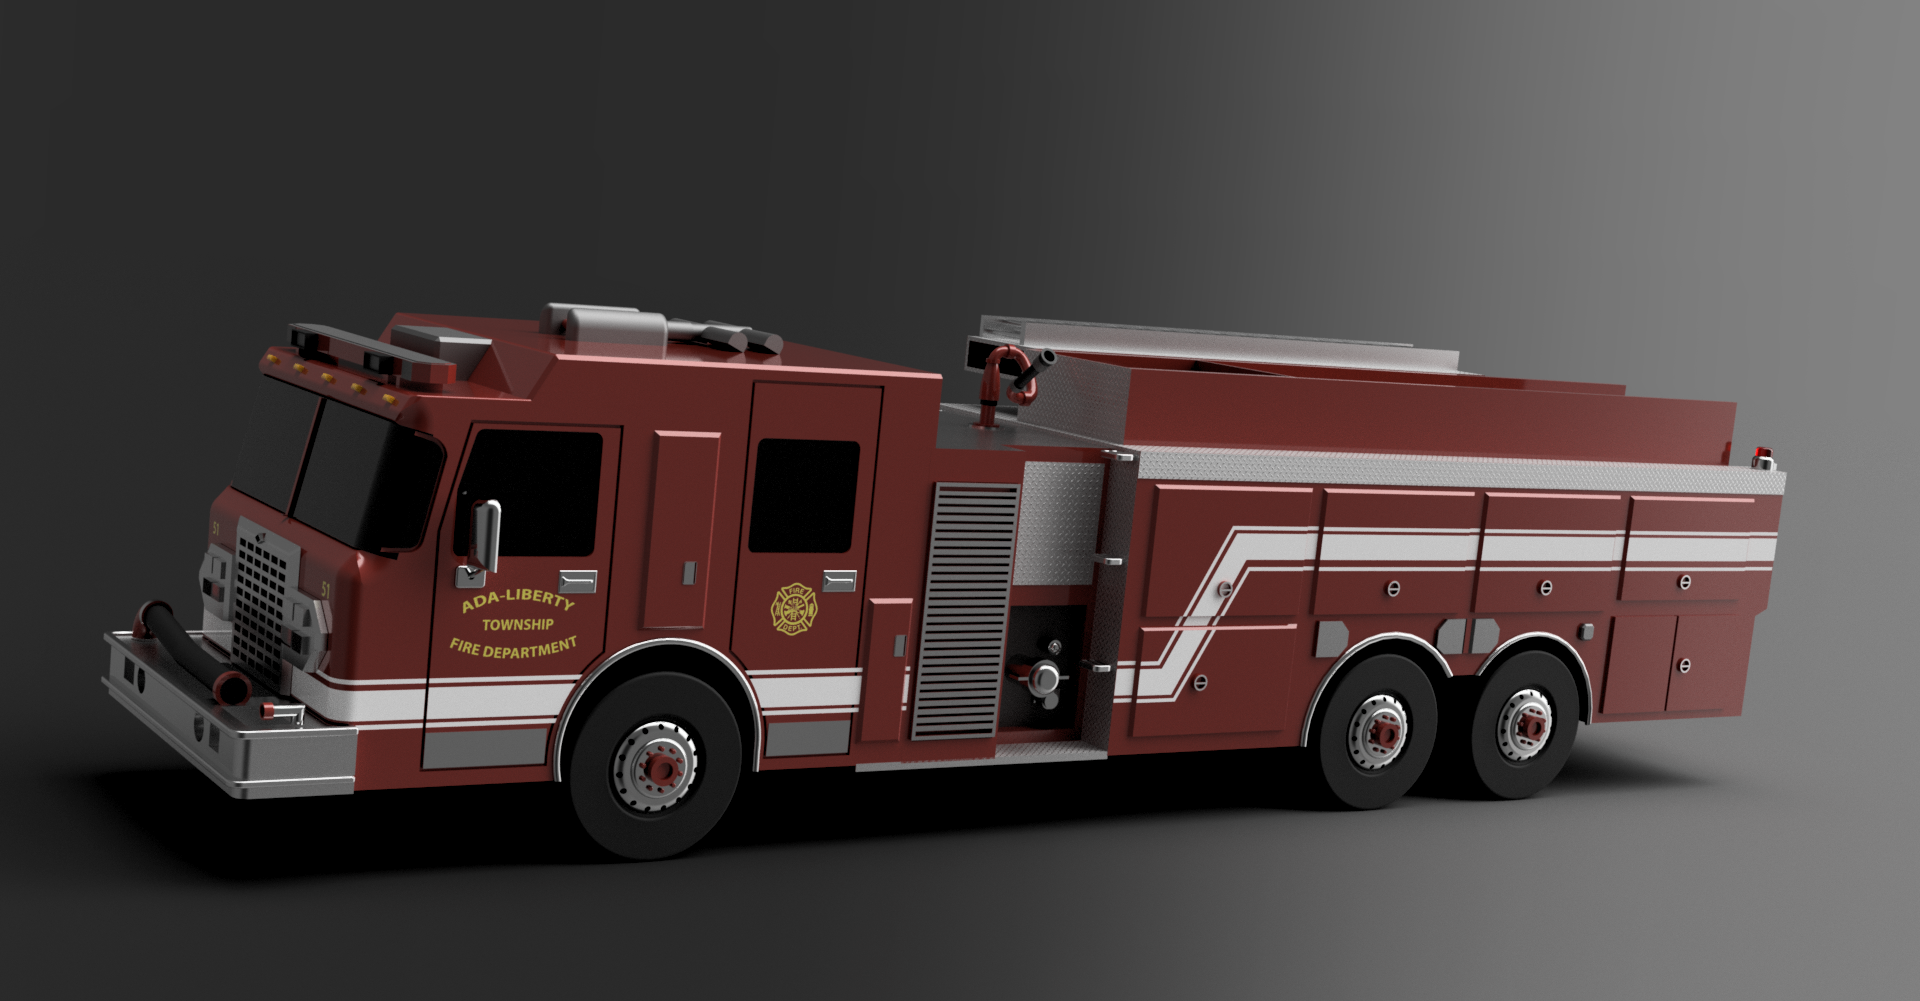 2019 Smeal/Spartan Fire truck pumper tanker by Tackelberry